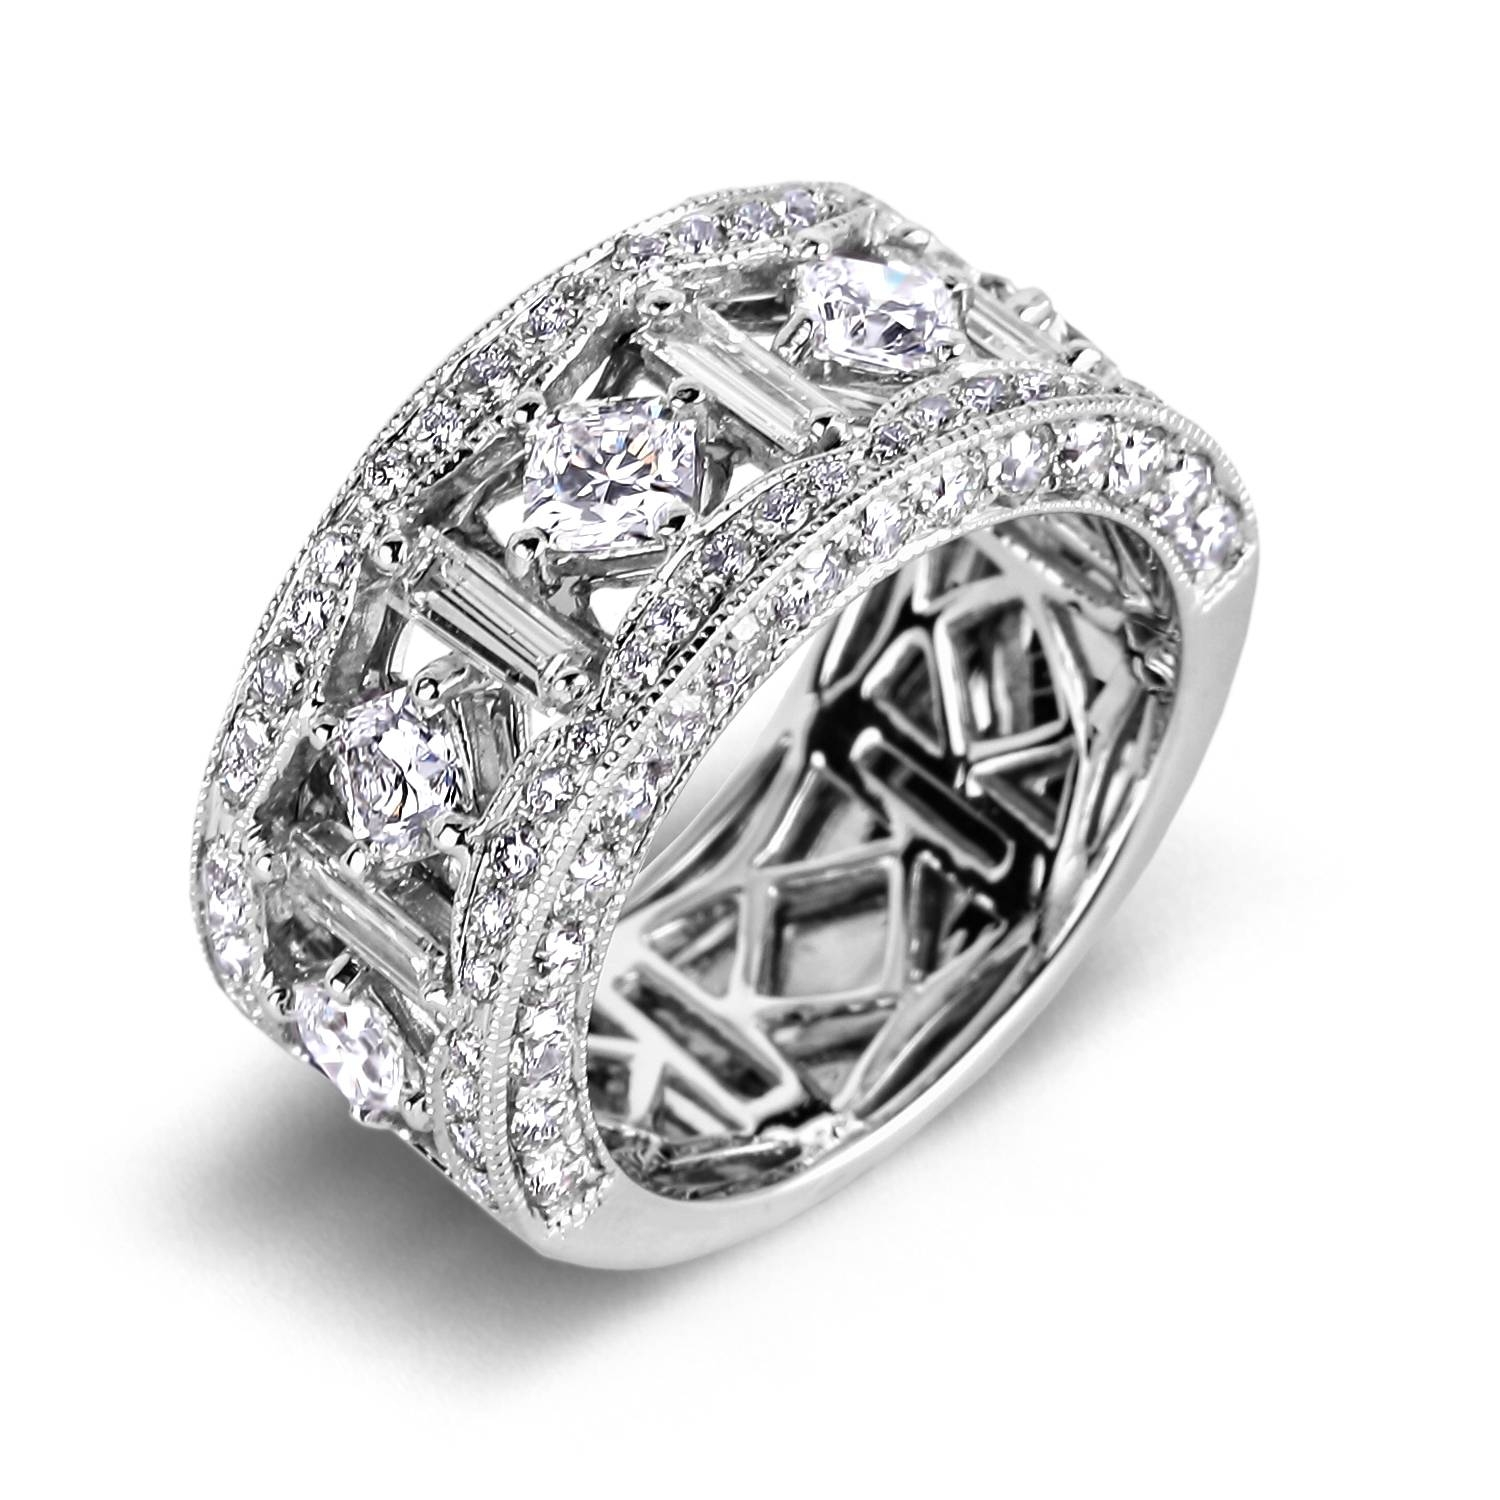 Wedding Anniversary Rings Diamonds | Wedding Ideas Intended For Recent 5 Year Anniversary Rings (View 11 of 25)